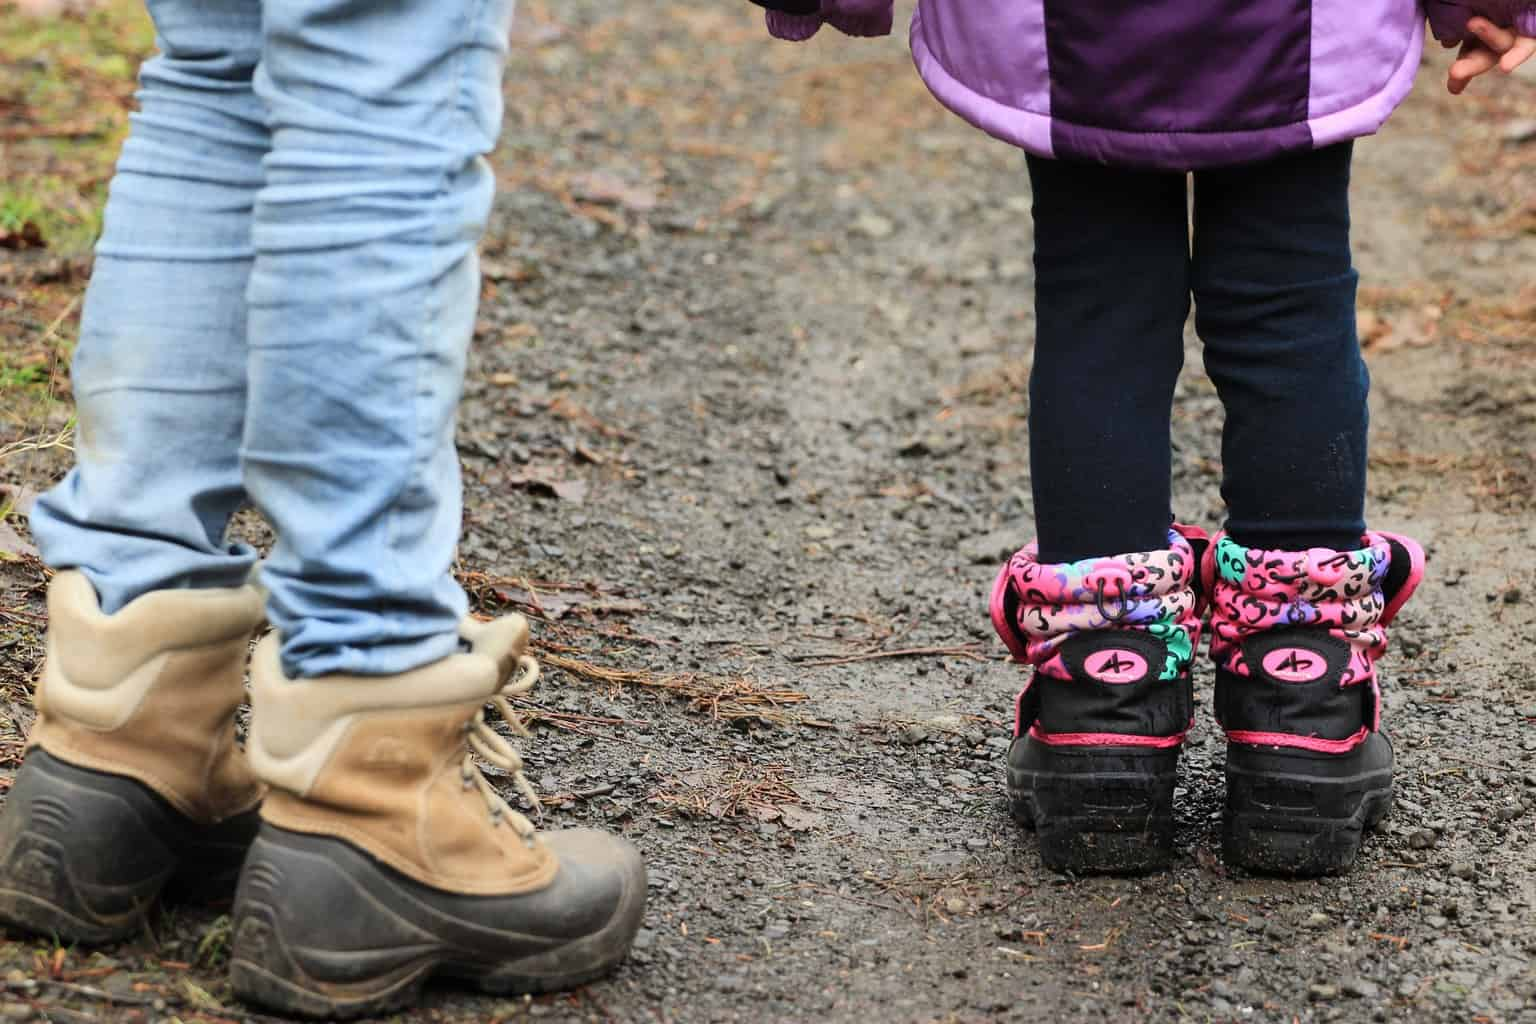 Two children in walking boots